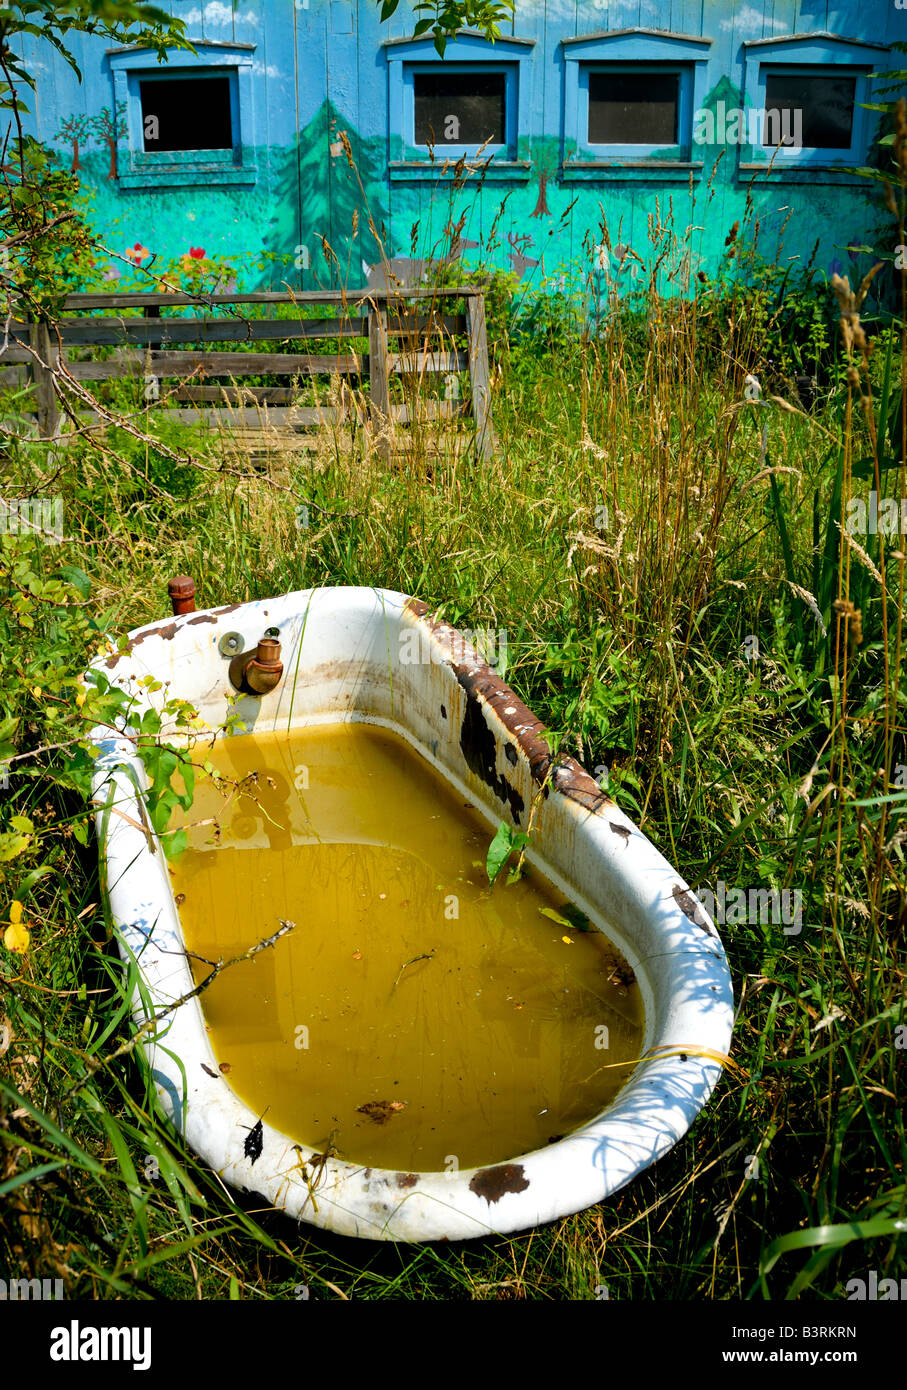 A corroded old bathtub filled with dirty water sits in a field near ...